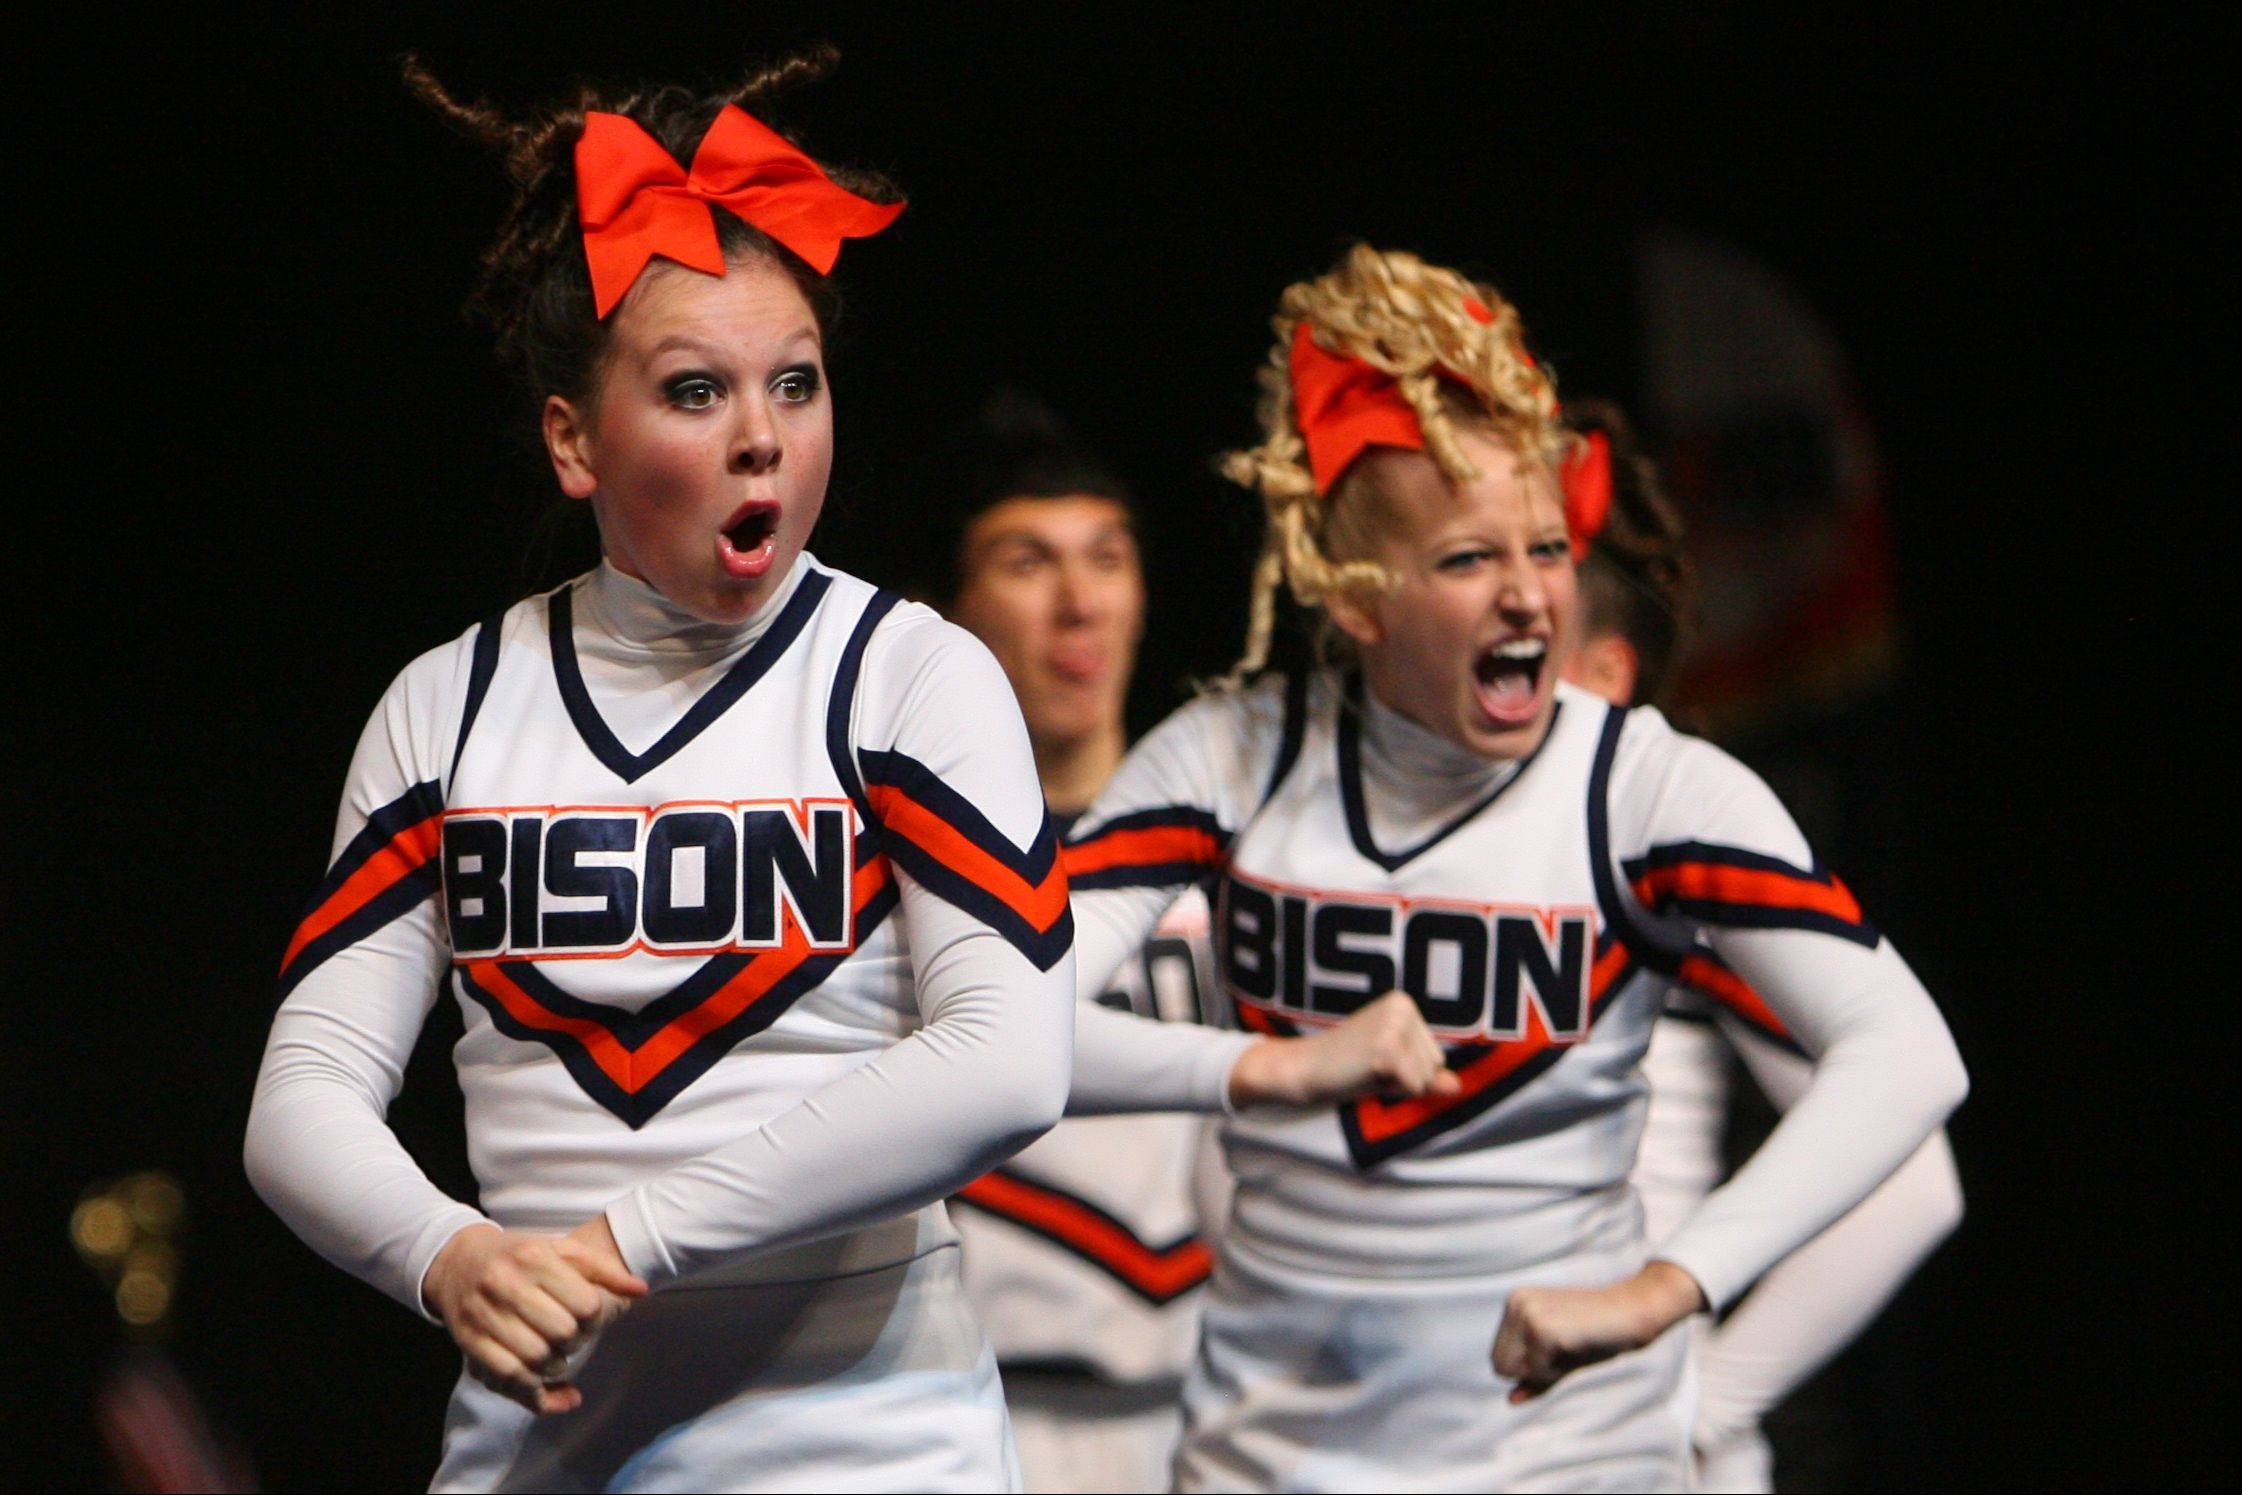 Buffalo Grove High School competes in the in the Competitive Cheerleading prelims on Friday at the U.S. Cellular Coliseum in Bloomington.